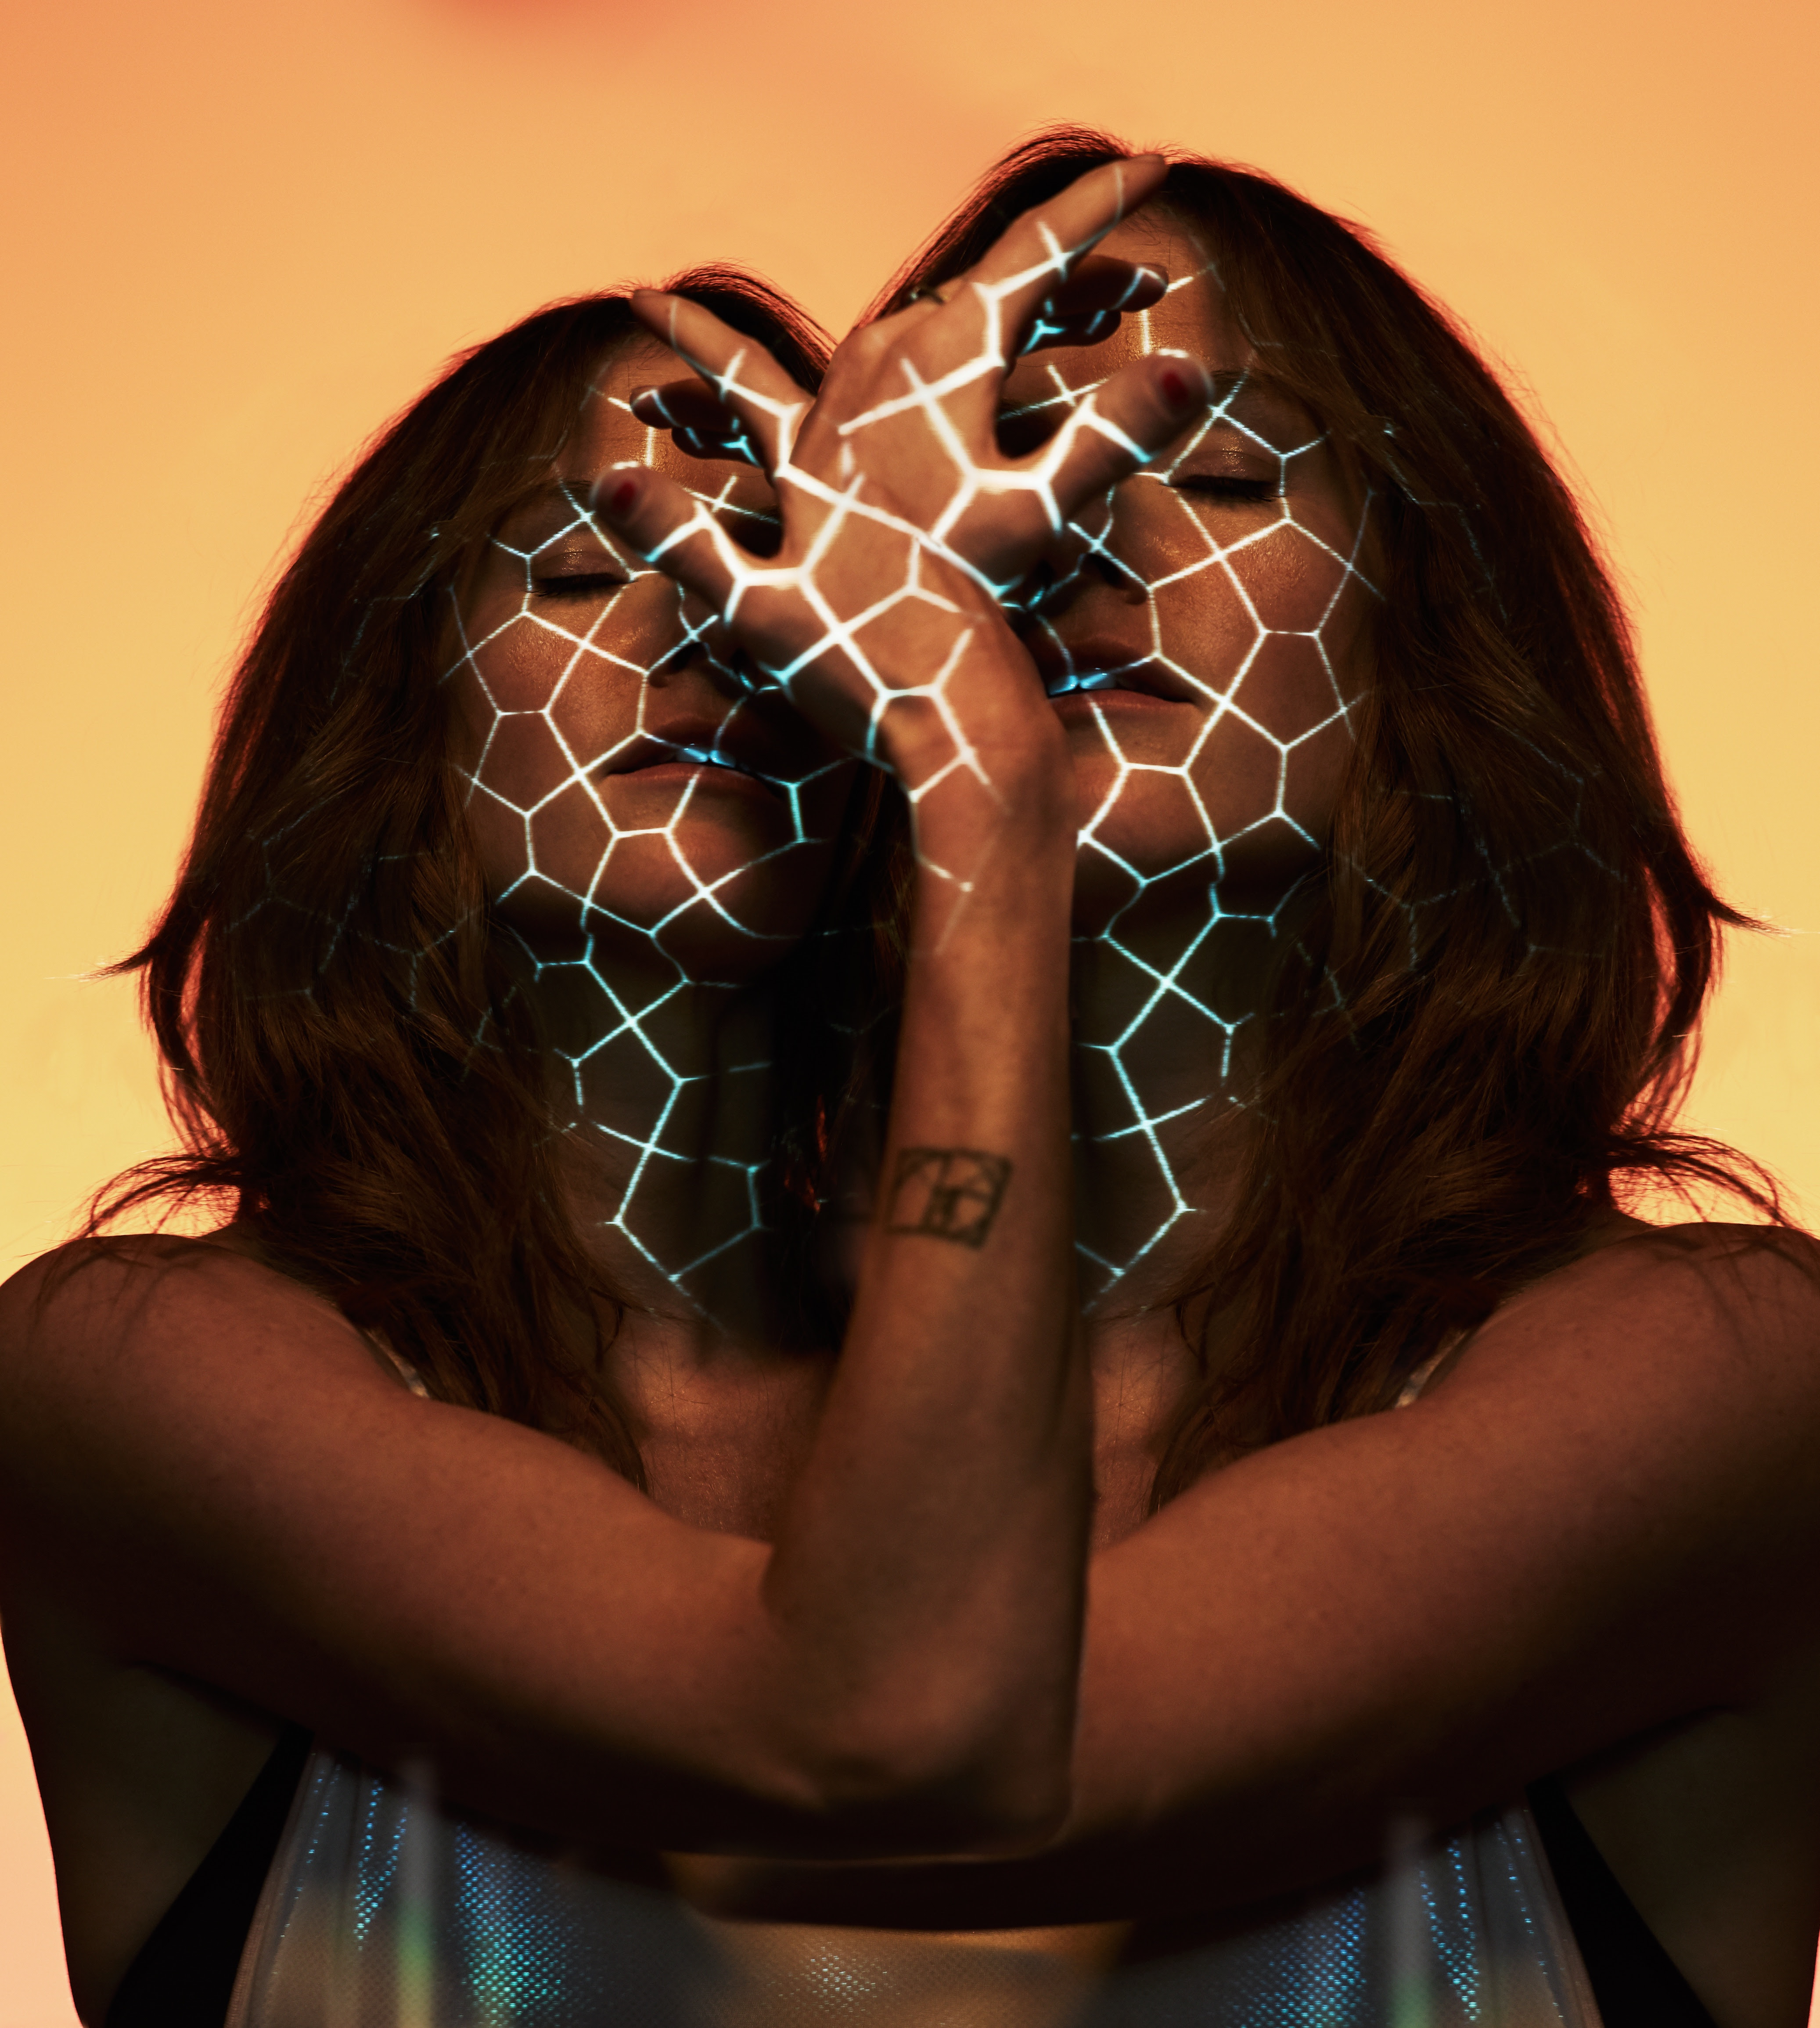 """To Follow and Lead"" by Kaitlyn Aurelia Smith is Northern Transmissions' 'Song of the Day'."